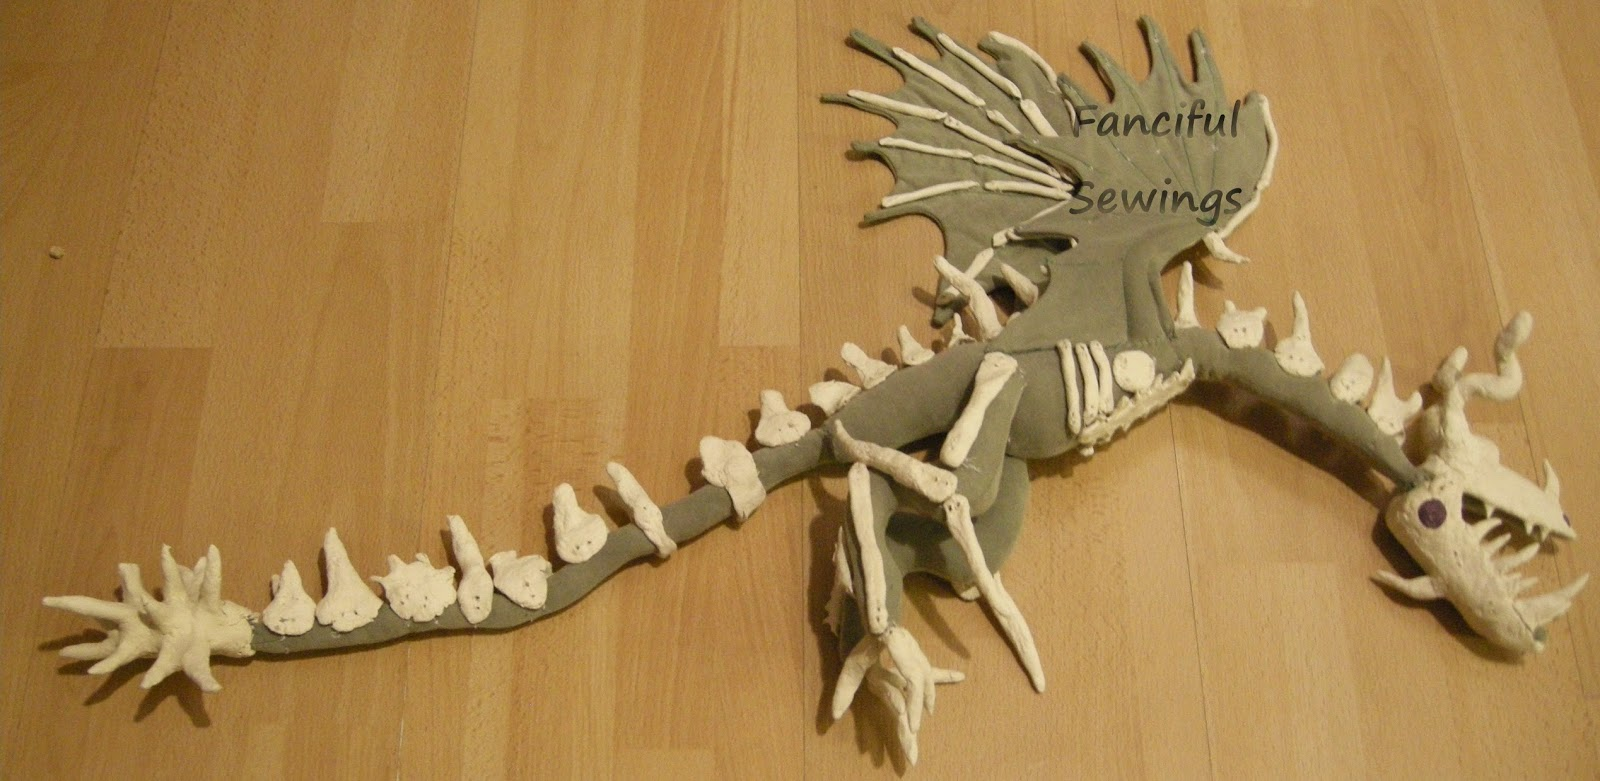 How to Sew Your Dragon - Fanciful Sewings